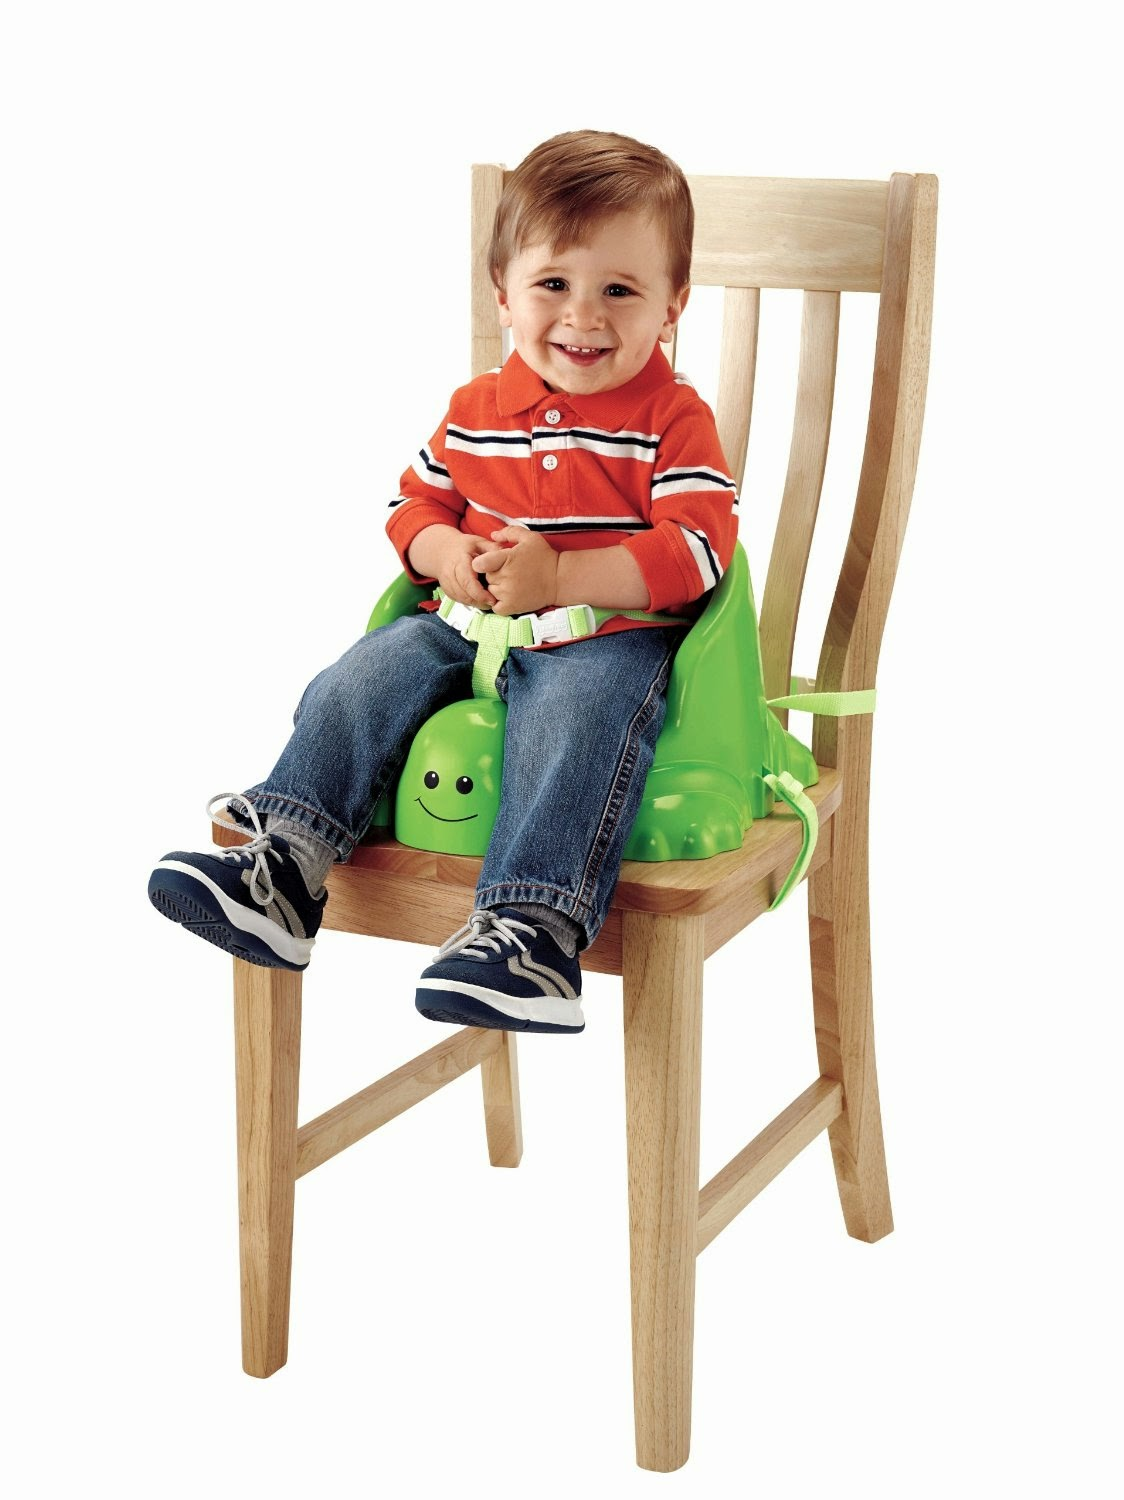 Get the POPULAR Fisher-Price Table Time Turtle Booster for $12.05!